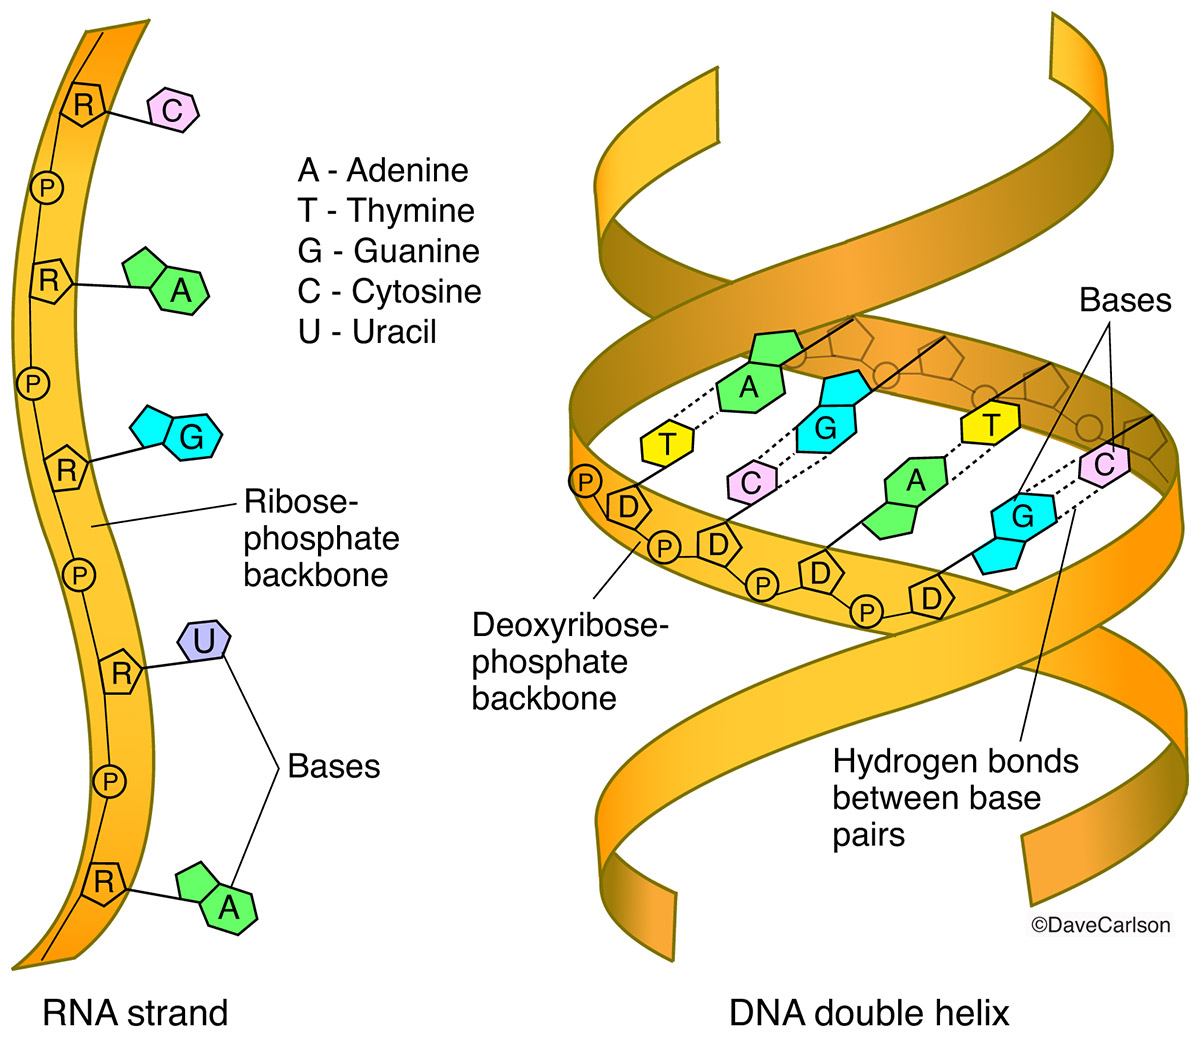 Illustration of the structural components and building blocks of DNA (deoxyribonucleic acid) and RNA (ribonucleic acid).